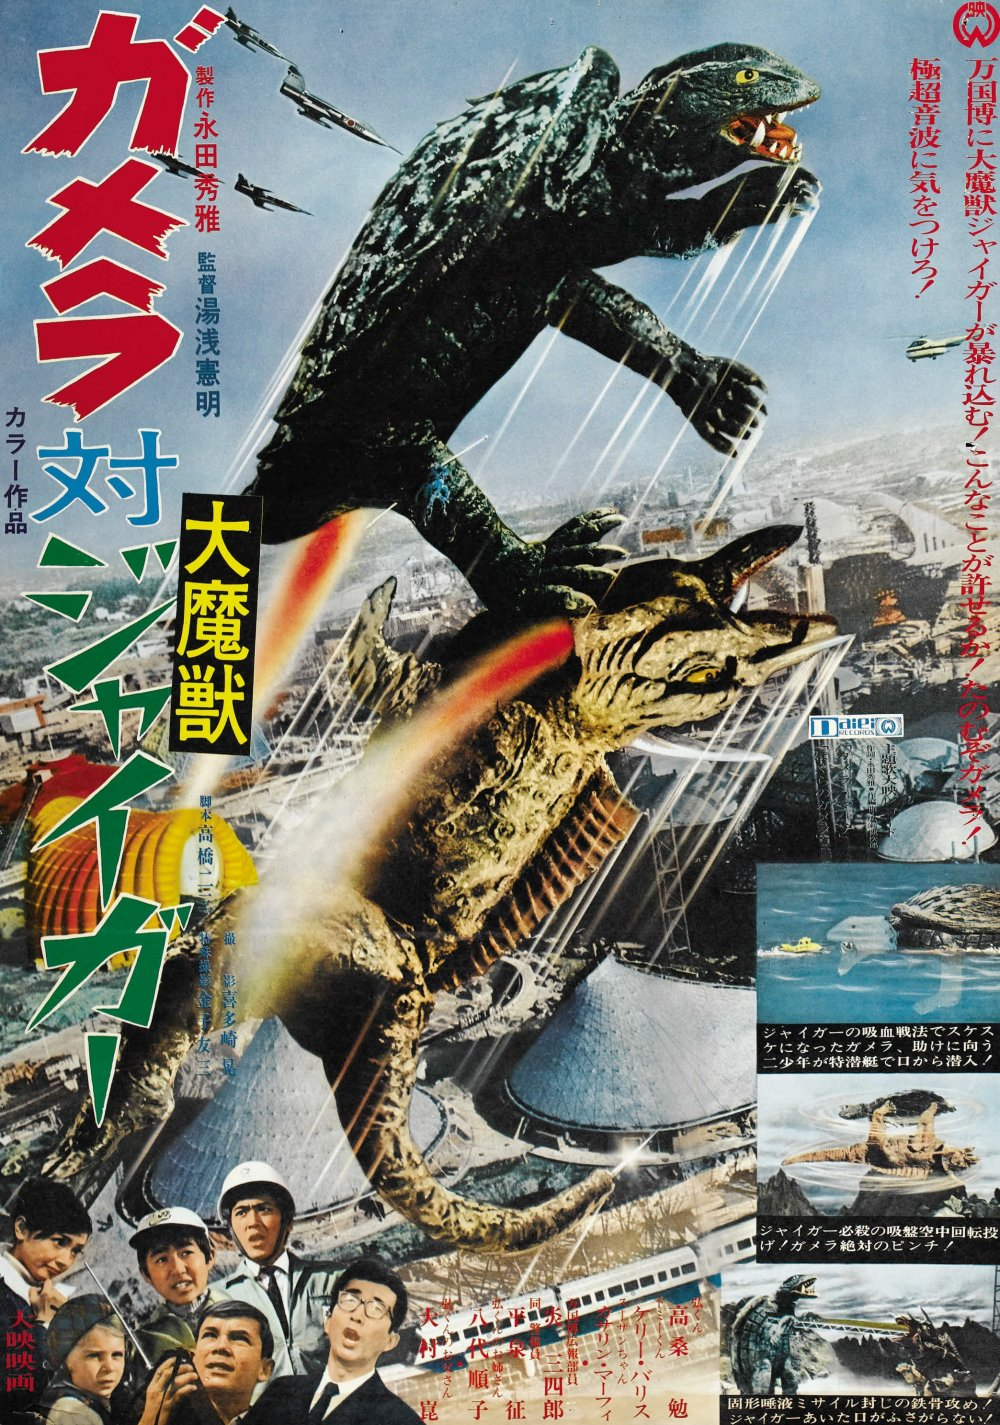 Gamera vs Jiger (1970)